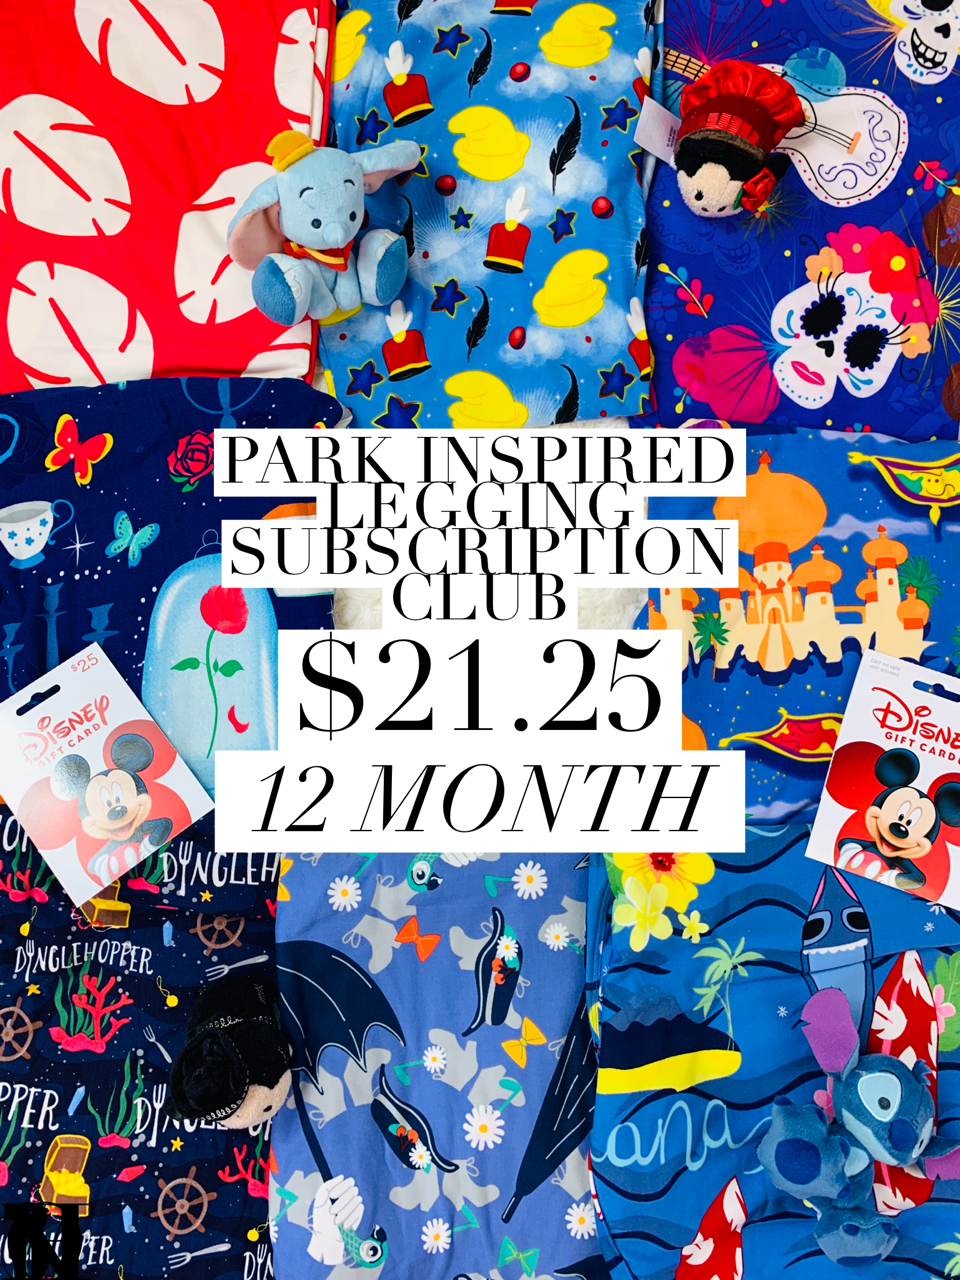 Park Inspired Leggings Subscription Club - 12 Month Subscription - Ambrie